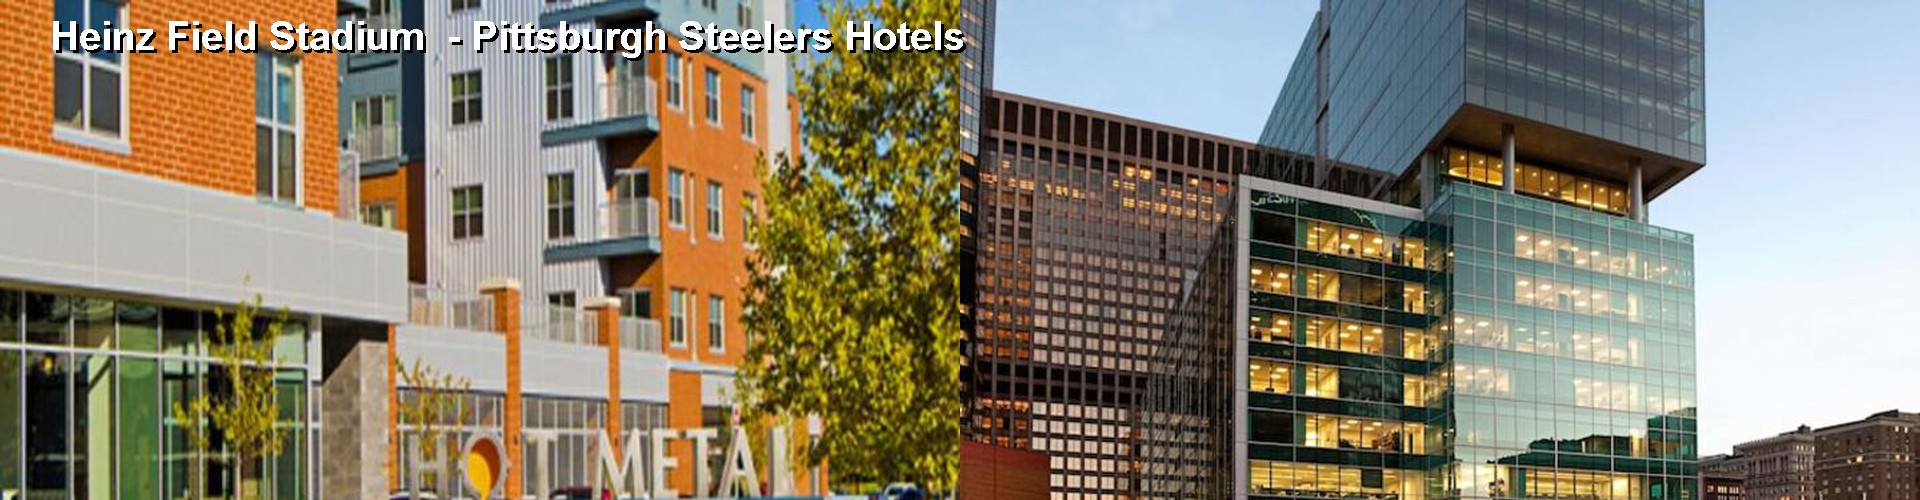 $45+ Hotels Near Heinz Field Stadium Pittsburgh Steelers (PA)